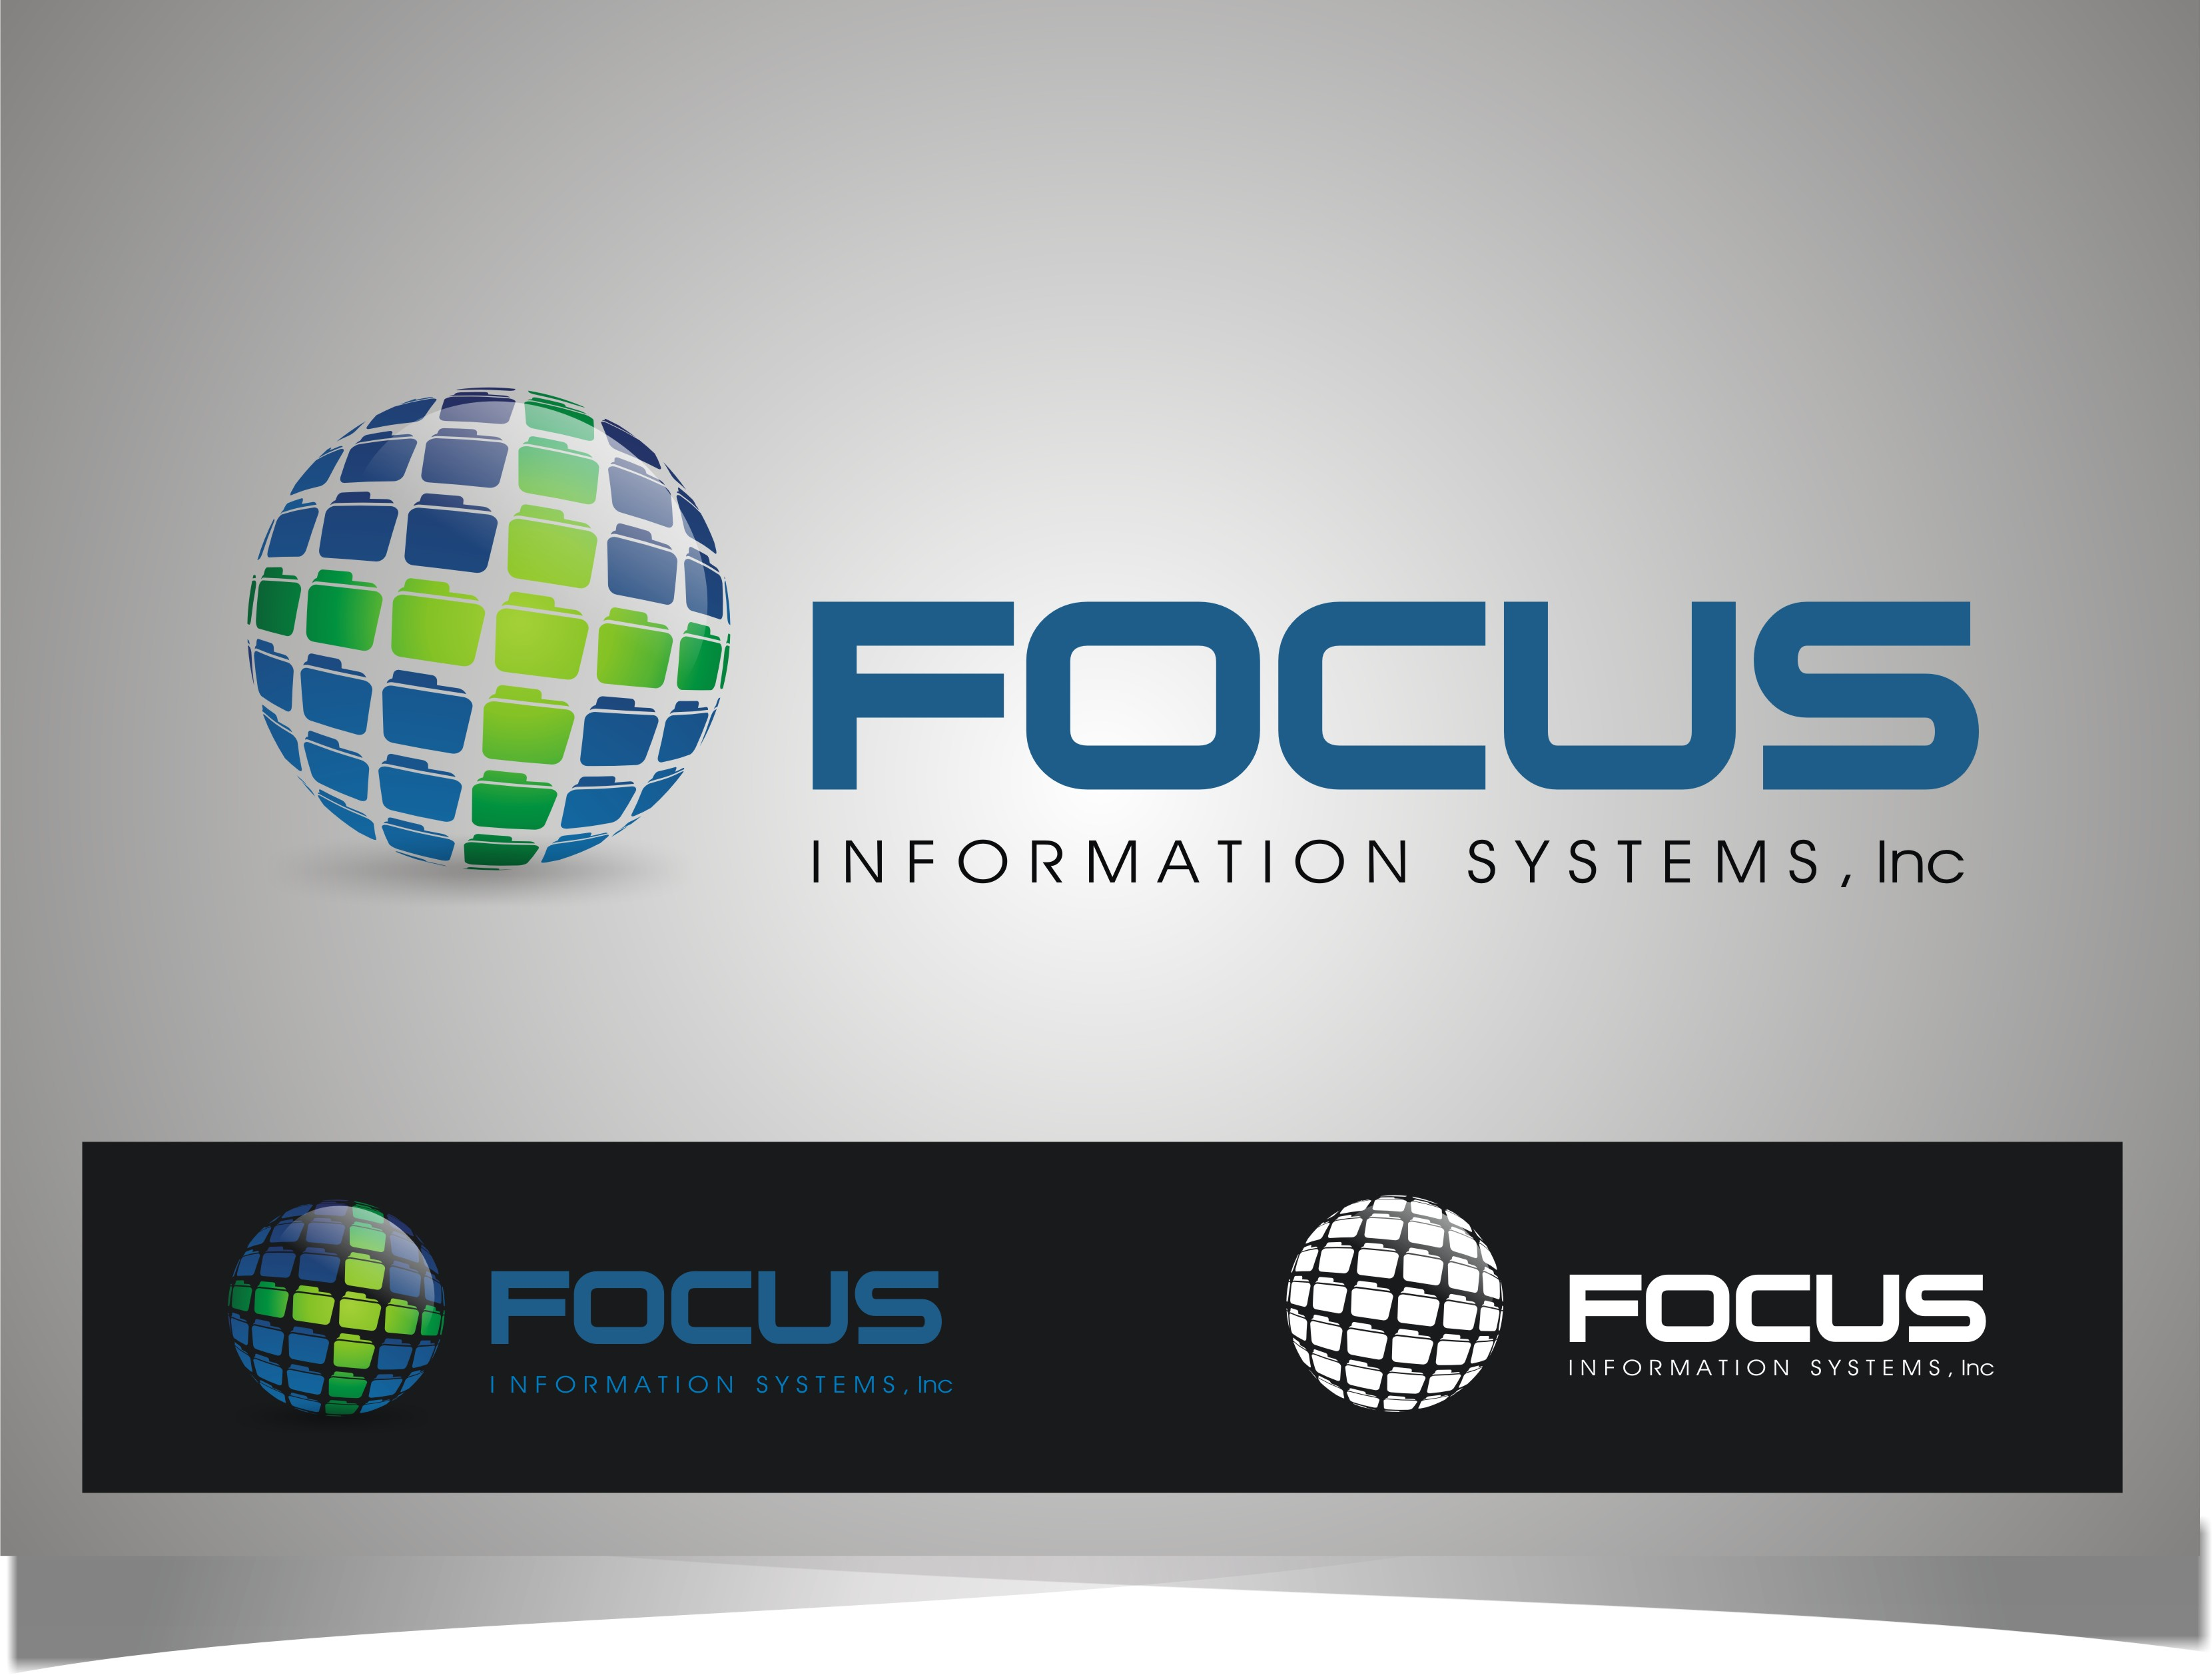 Logo Design by Bangun Prastyo - Entry No. 112 in the Logo Design Contest Artistic Logo Design for Focus Information Systems, Inc..